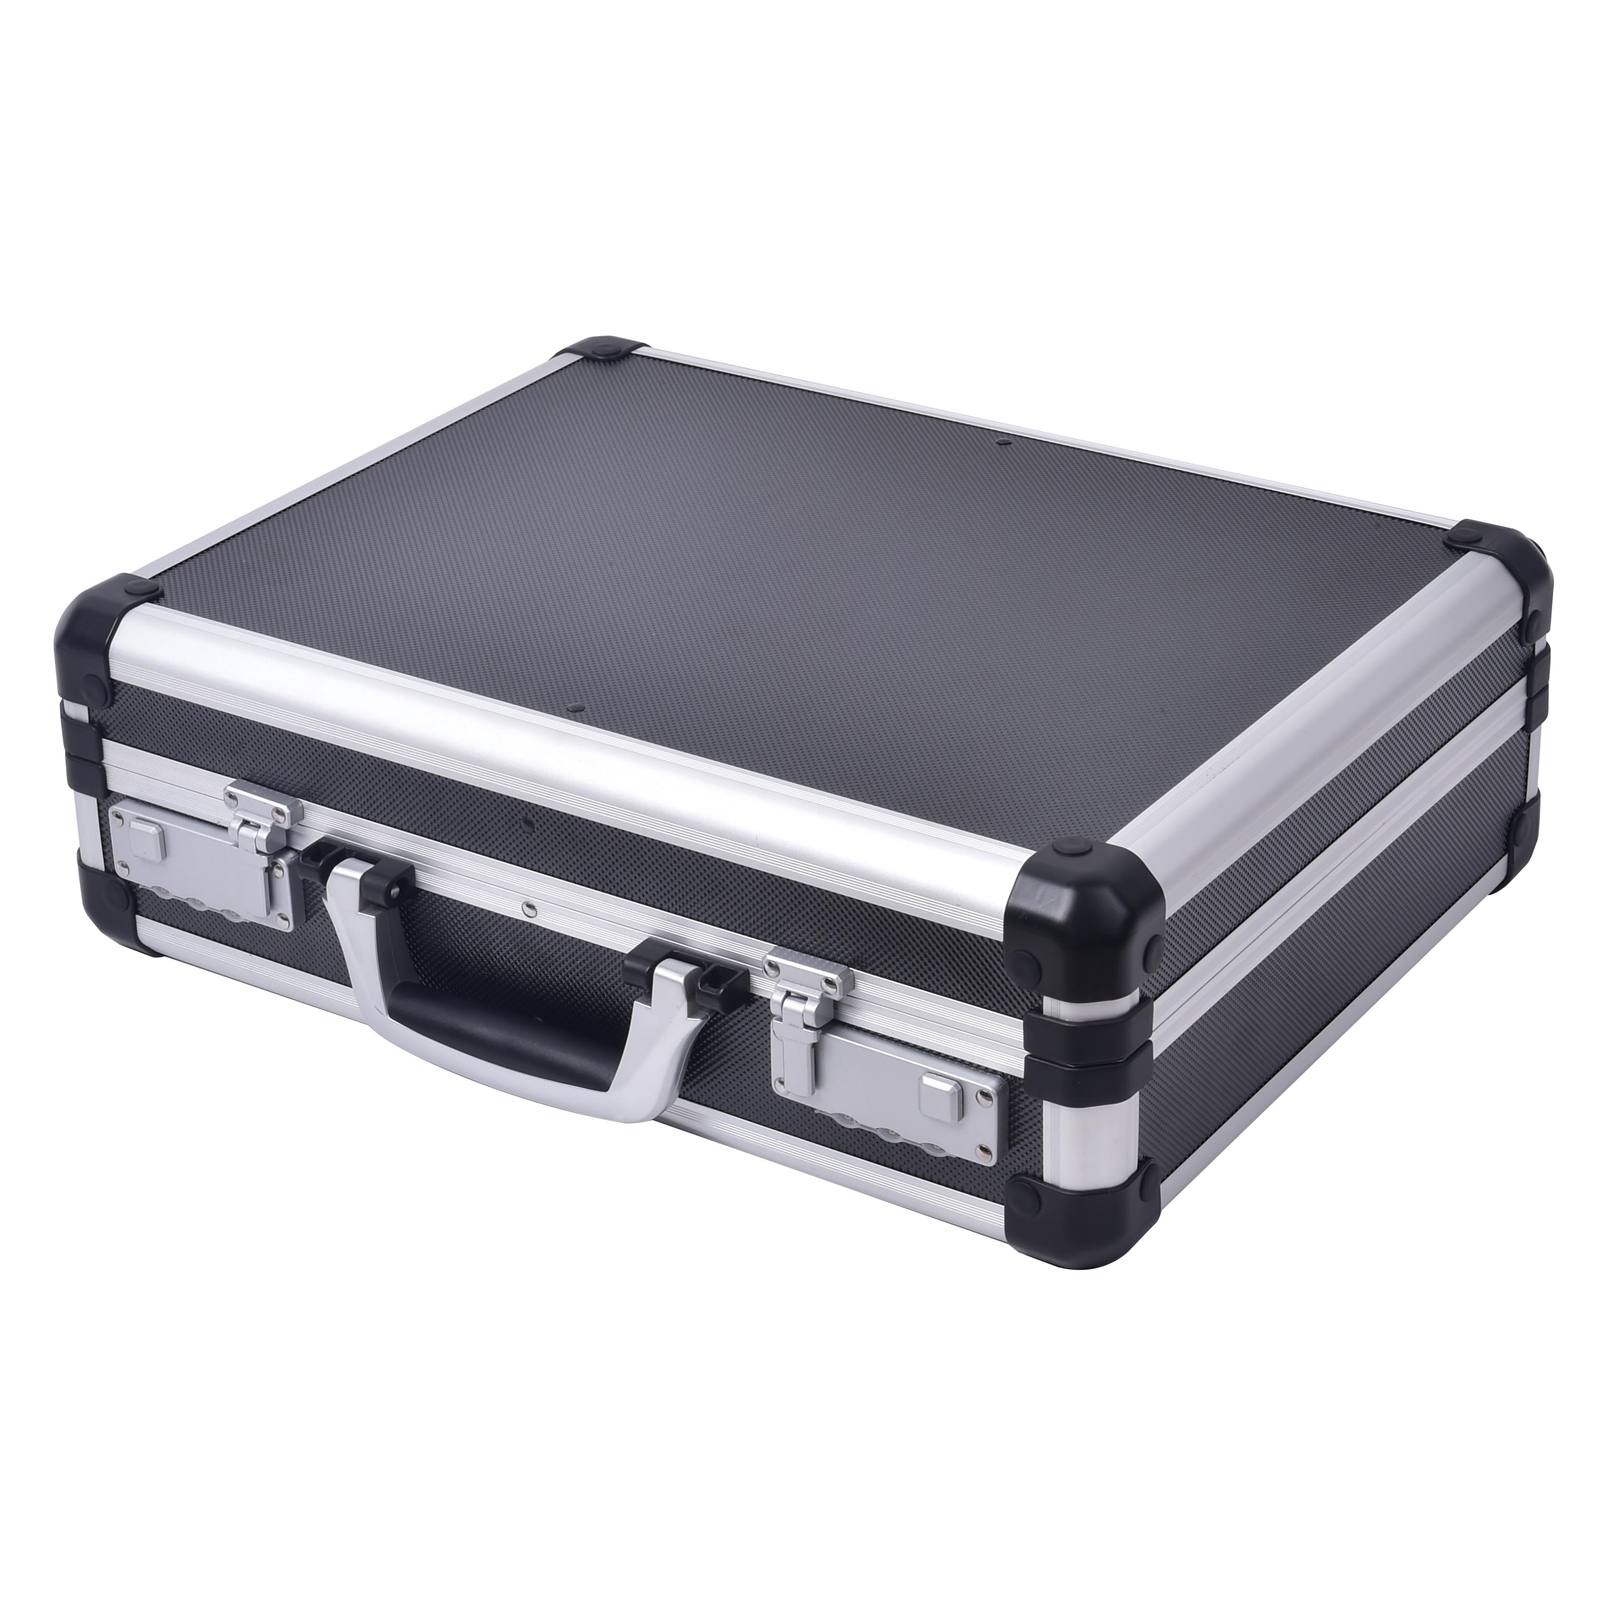 Tactix Aluminium Tool Case with Removable Form Insert